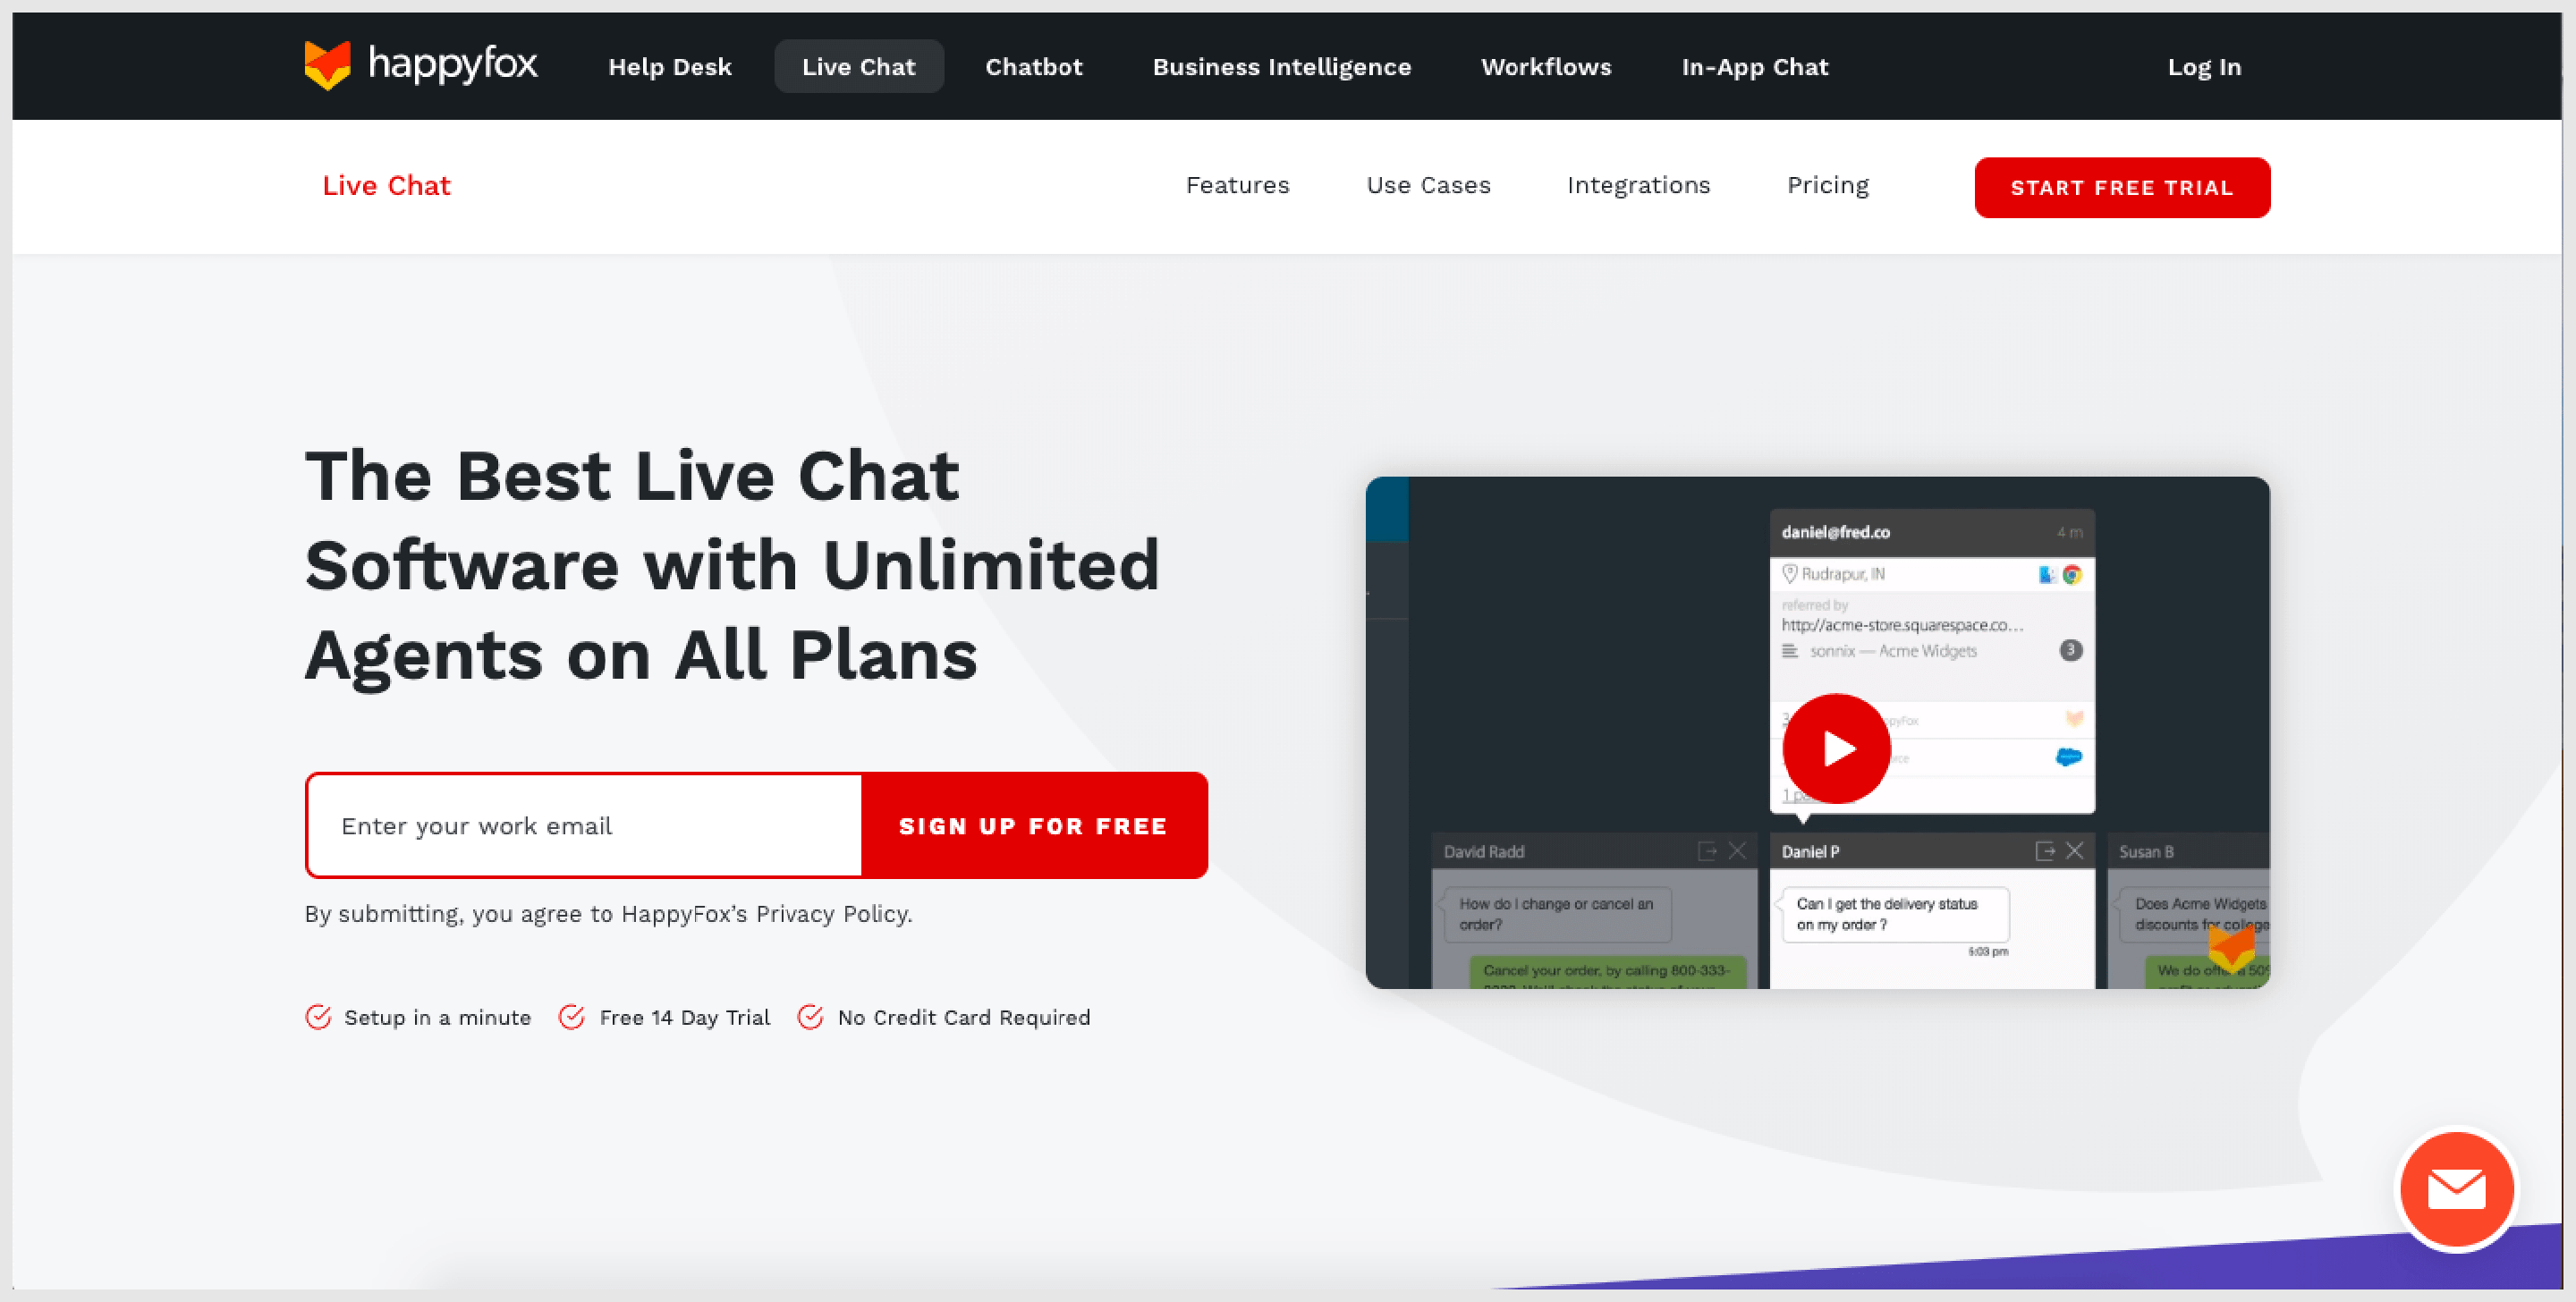 HappyFox has solutions for almost every aspect of customer service including live chat.